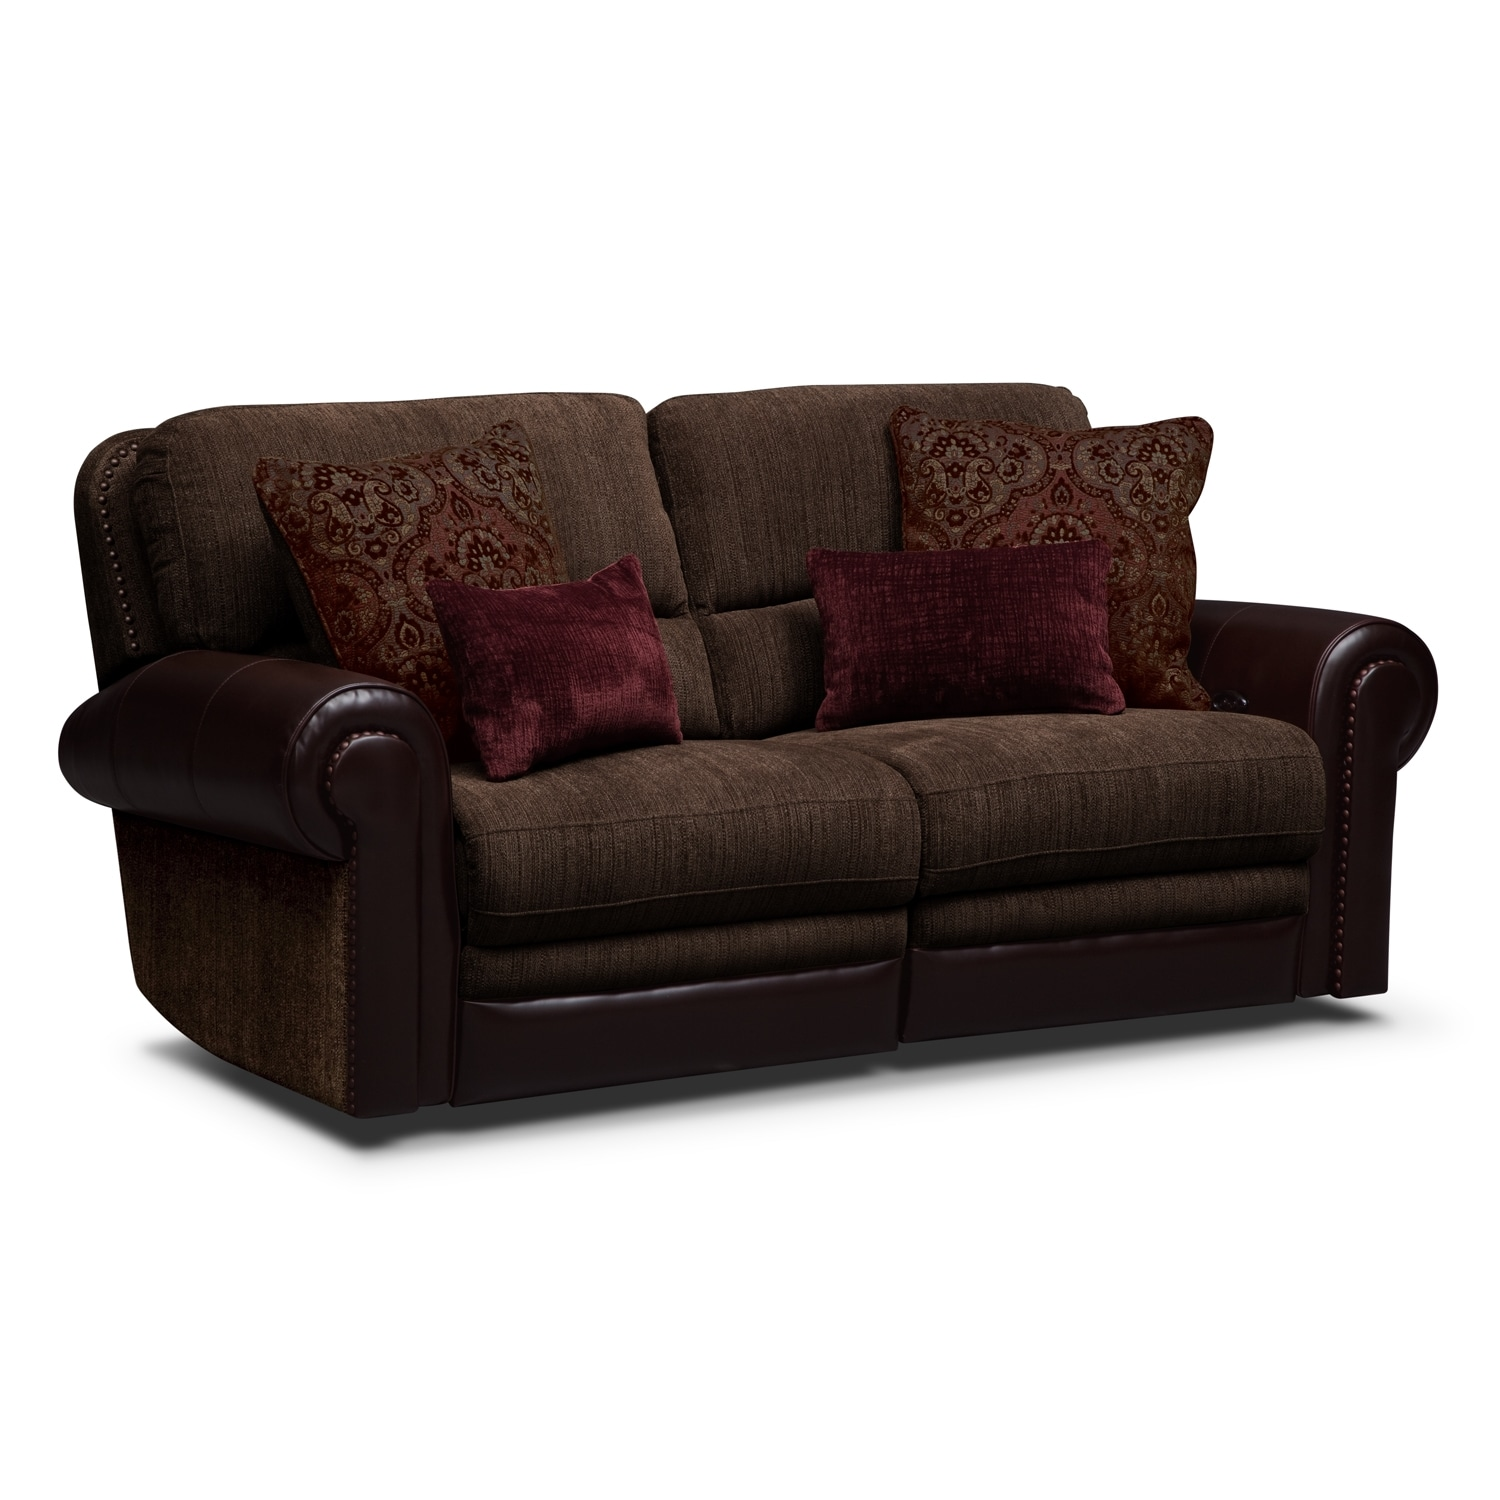 Prescott upholstery 2 pc power reclining sofa value Power reclining sofas and loveseats